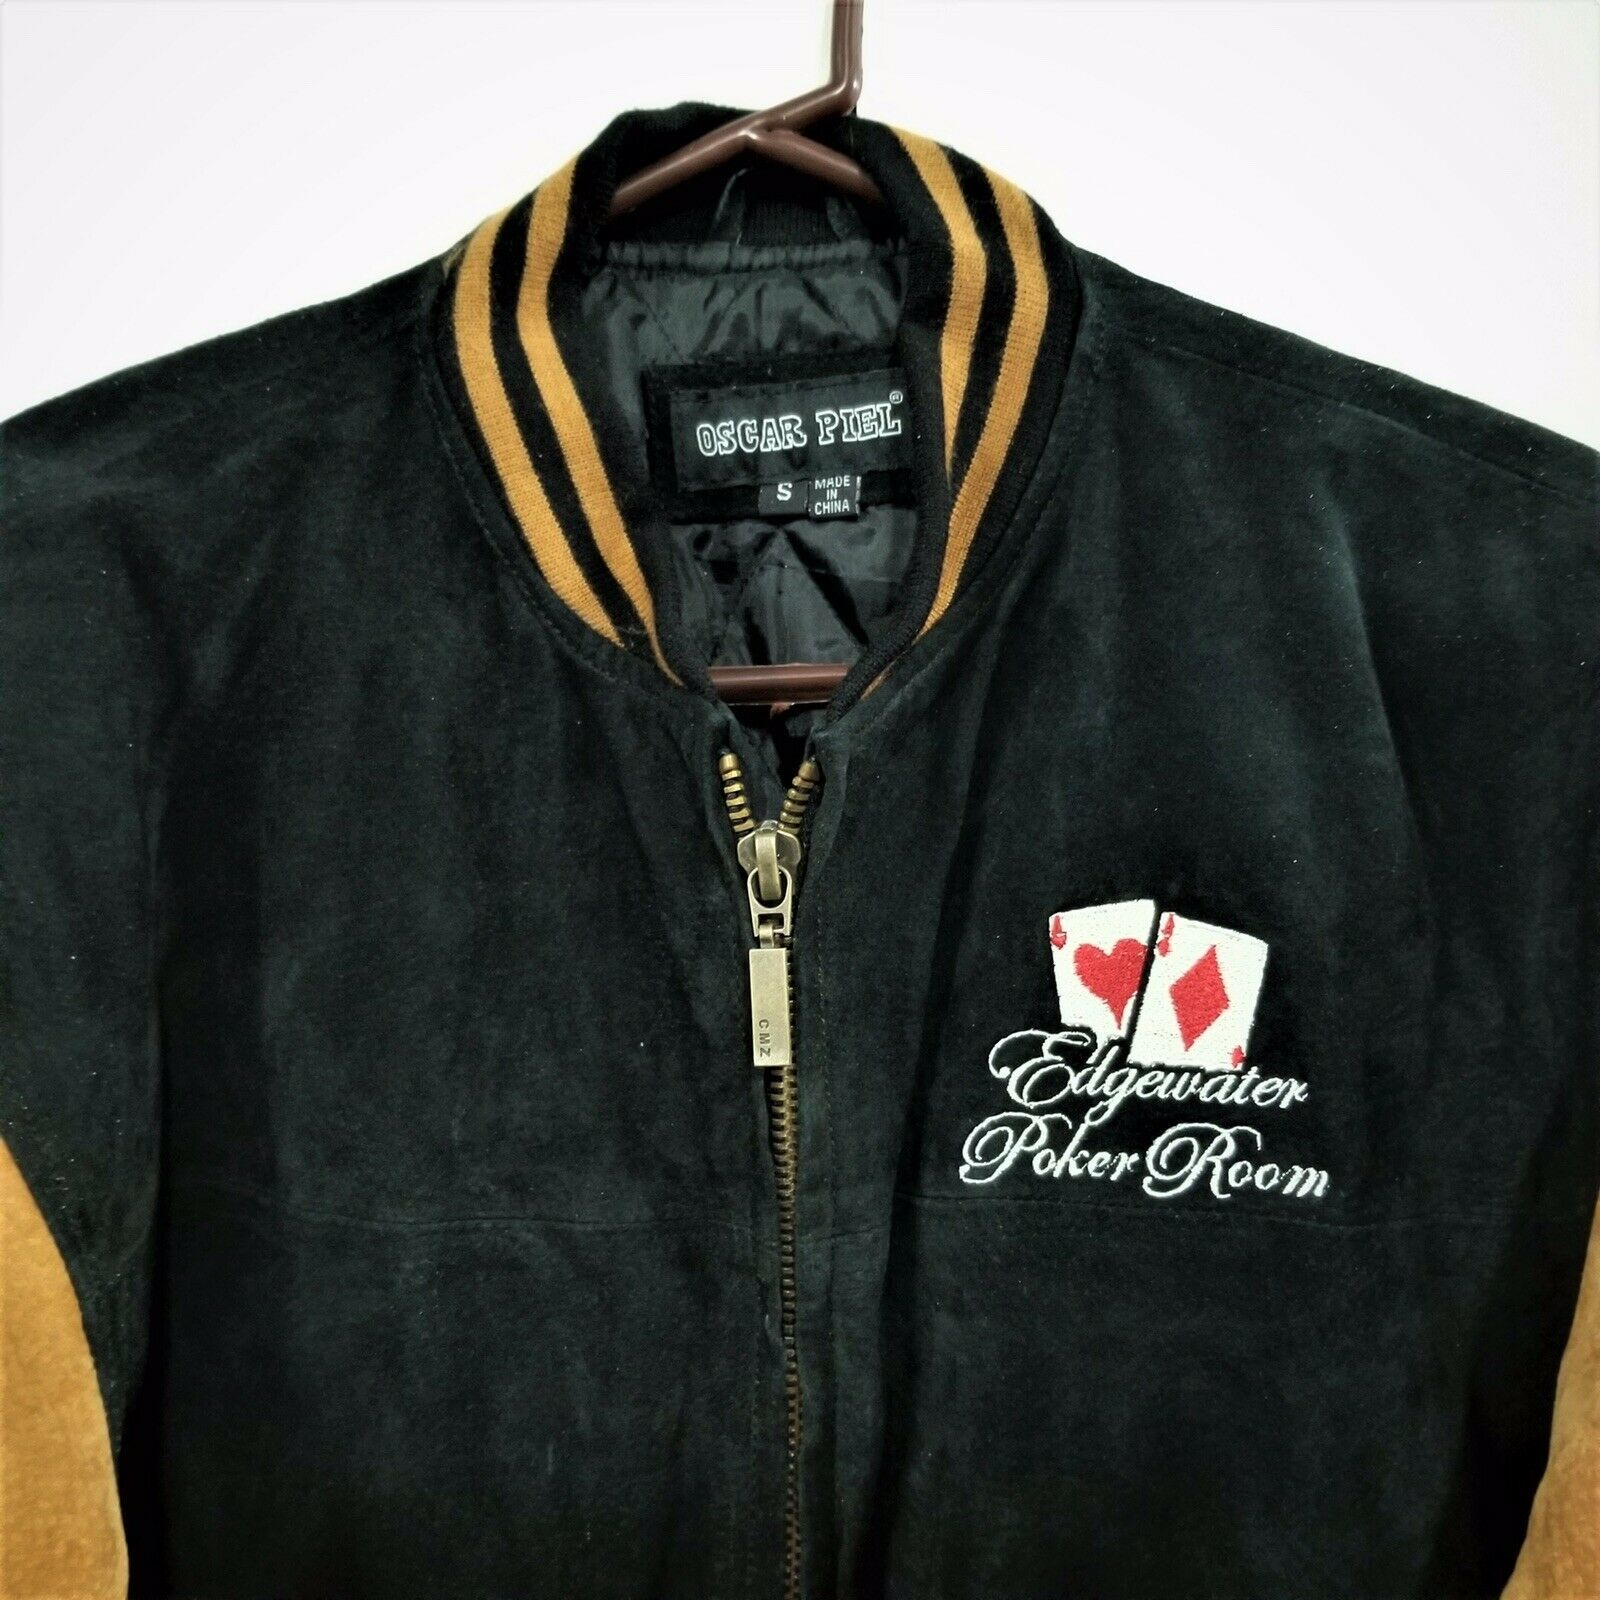 "Primary image for Mens Varsity Jacket Genuine Leather ""Edgewater Poker Room"" Tan & Black - S"